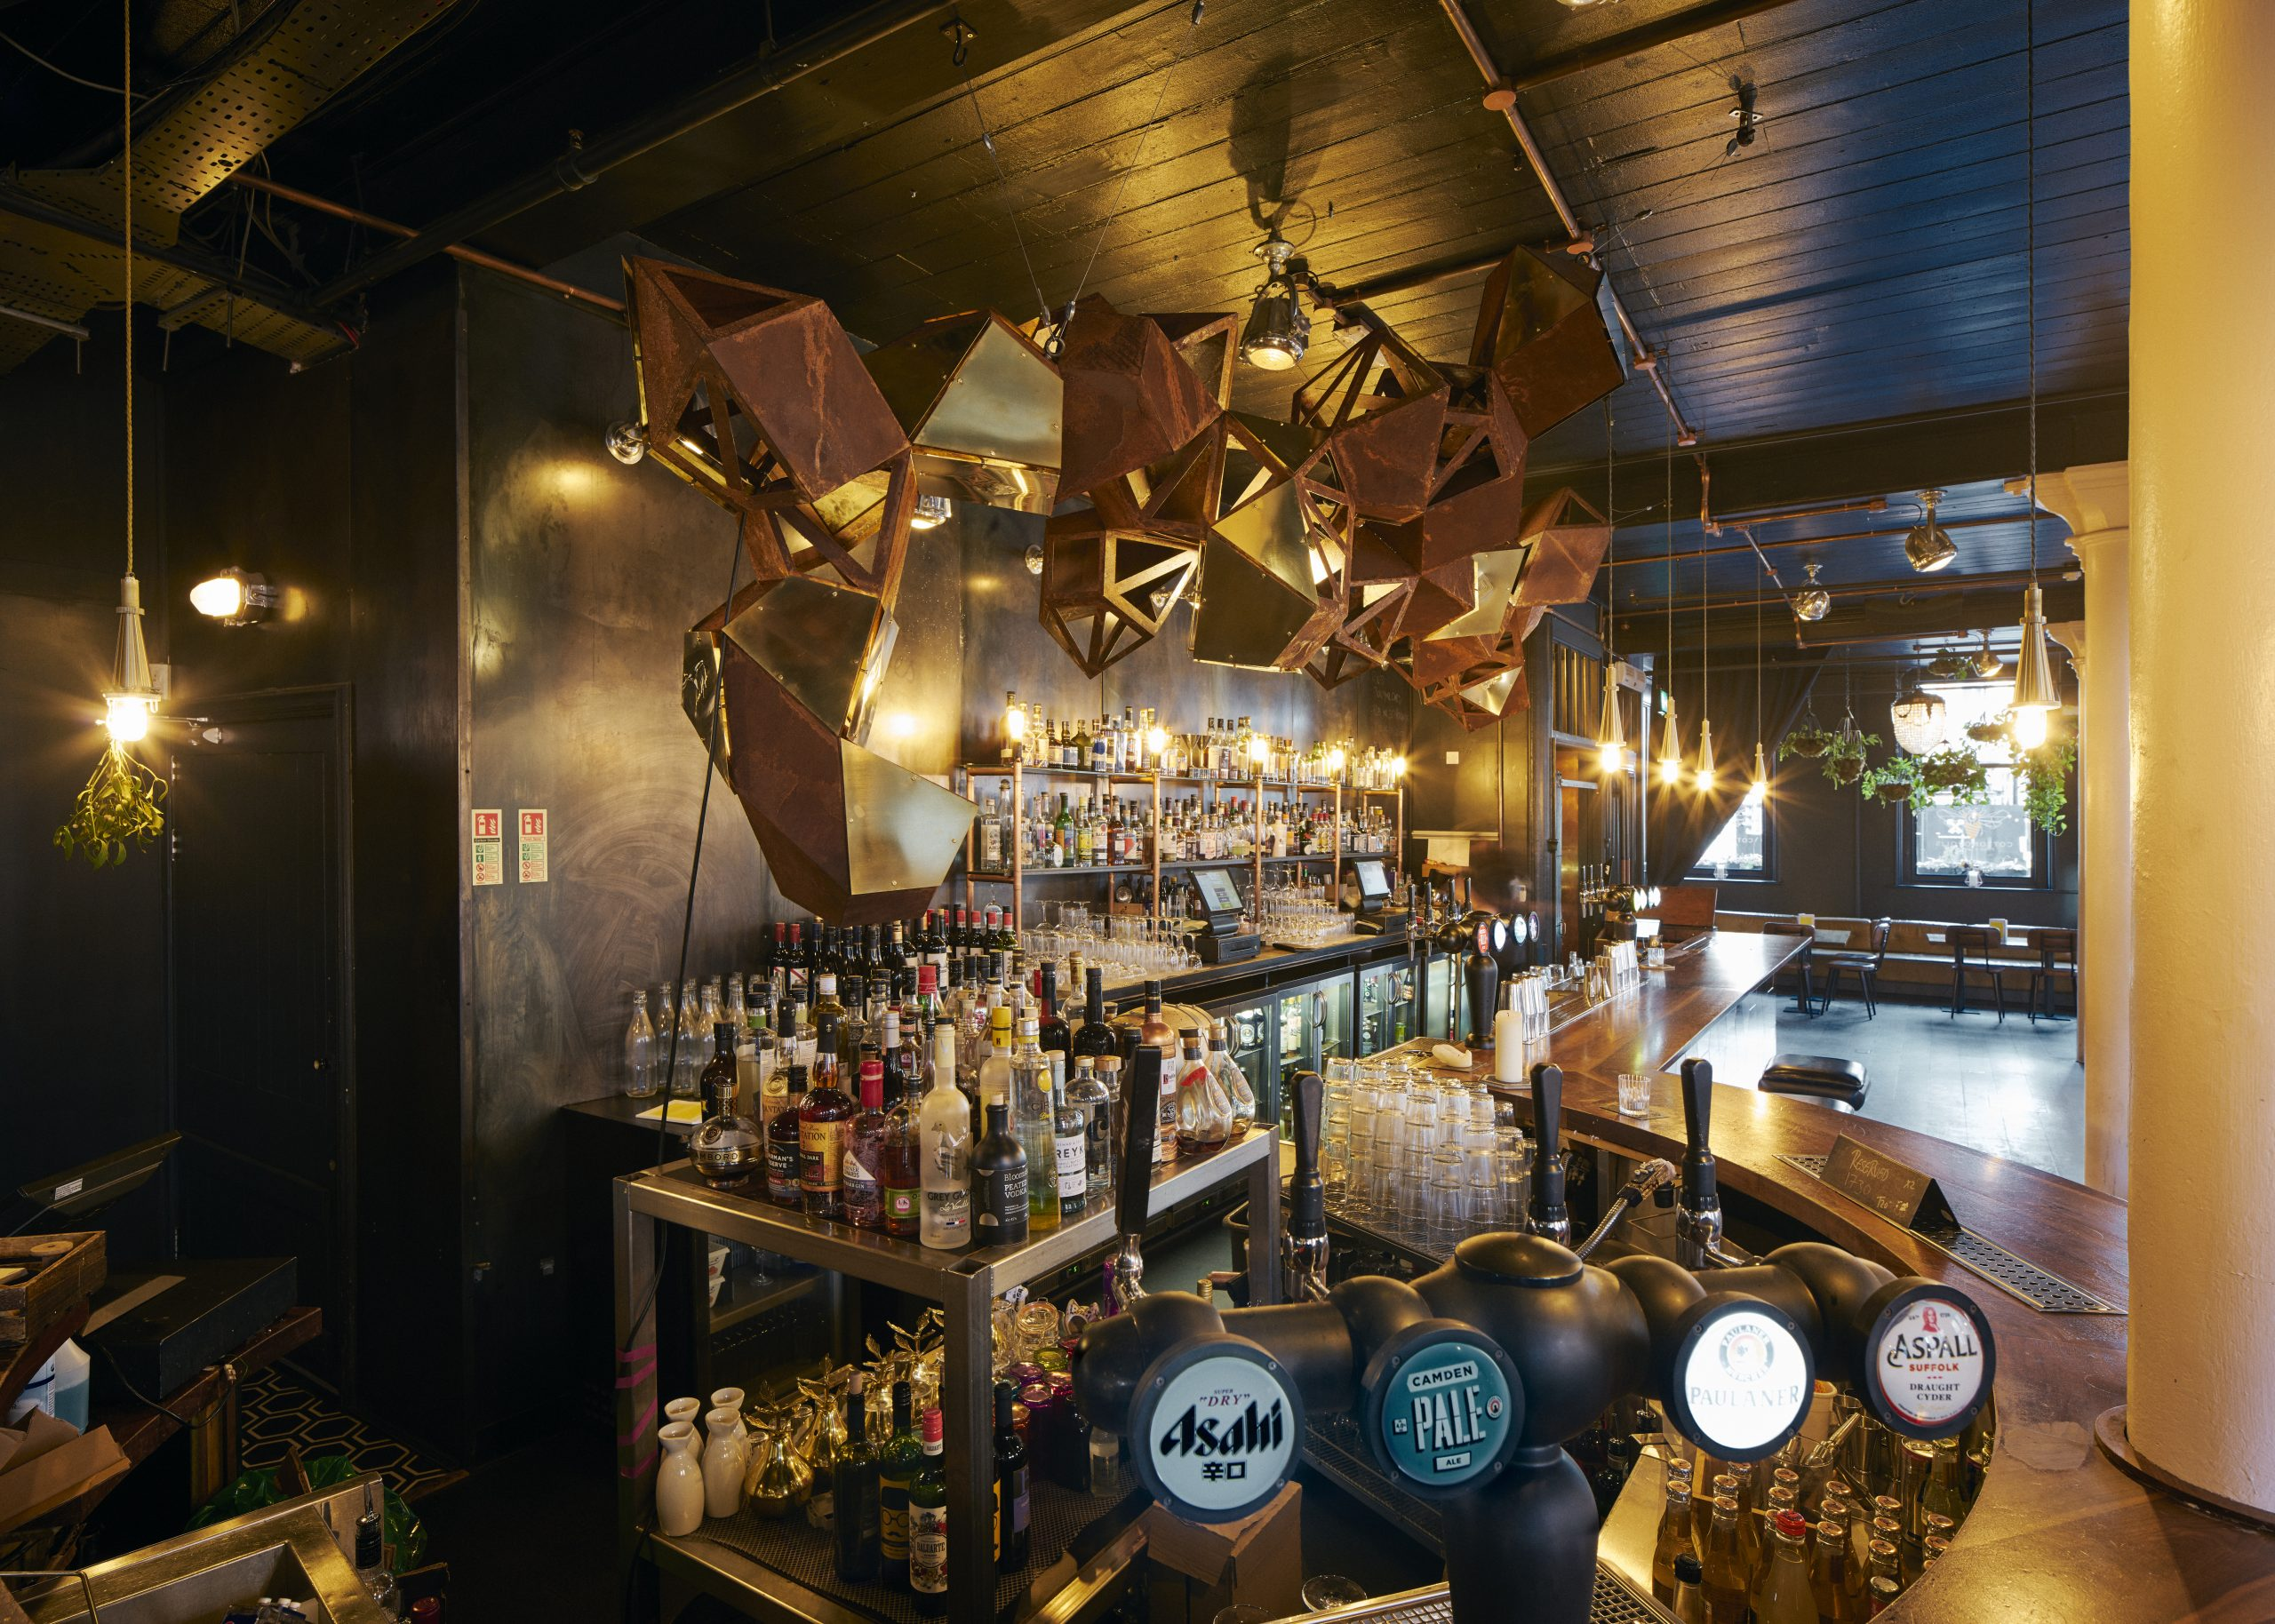 A side view of the metal sculpture from design studio Lazerian located over the bar in Manchester bar Cottonopolis